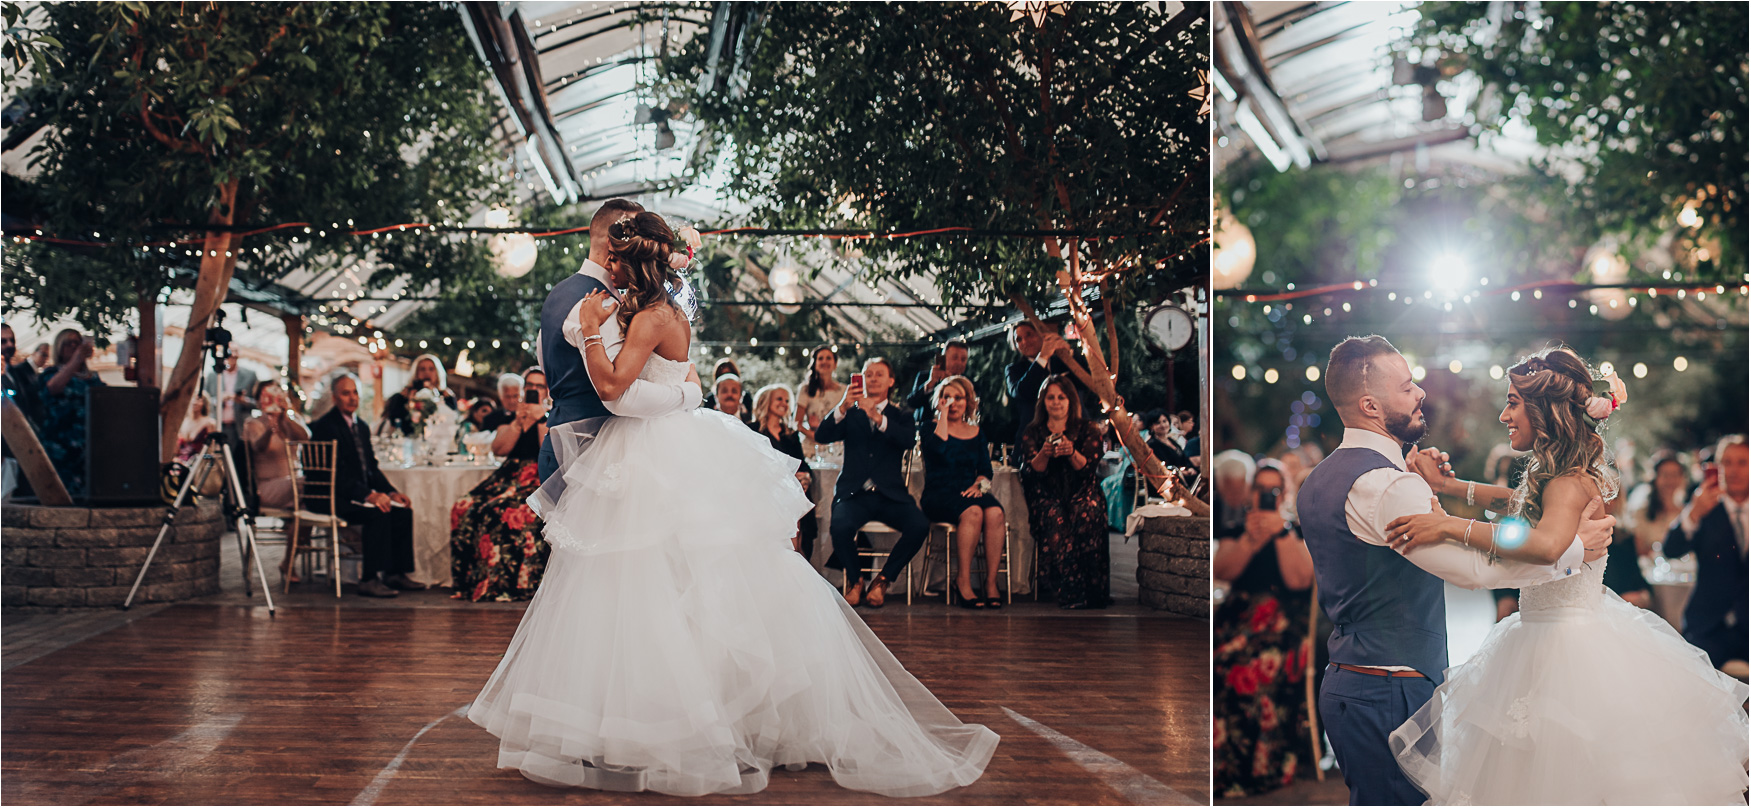 Fairy tale first dance photo at the Madsen's Greenhouse wedding reception